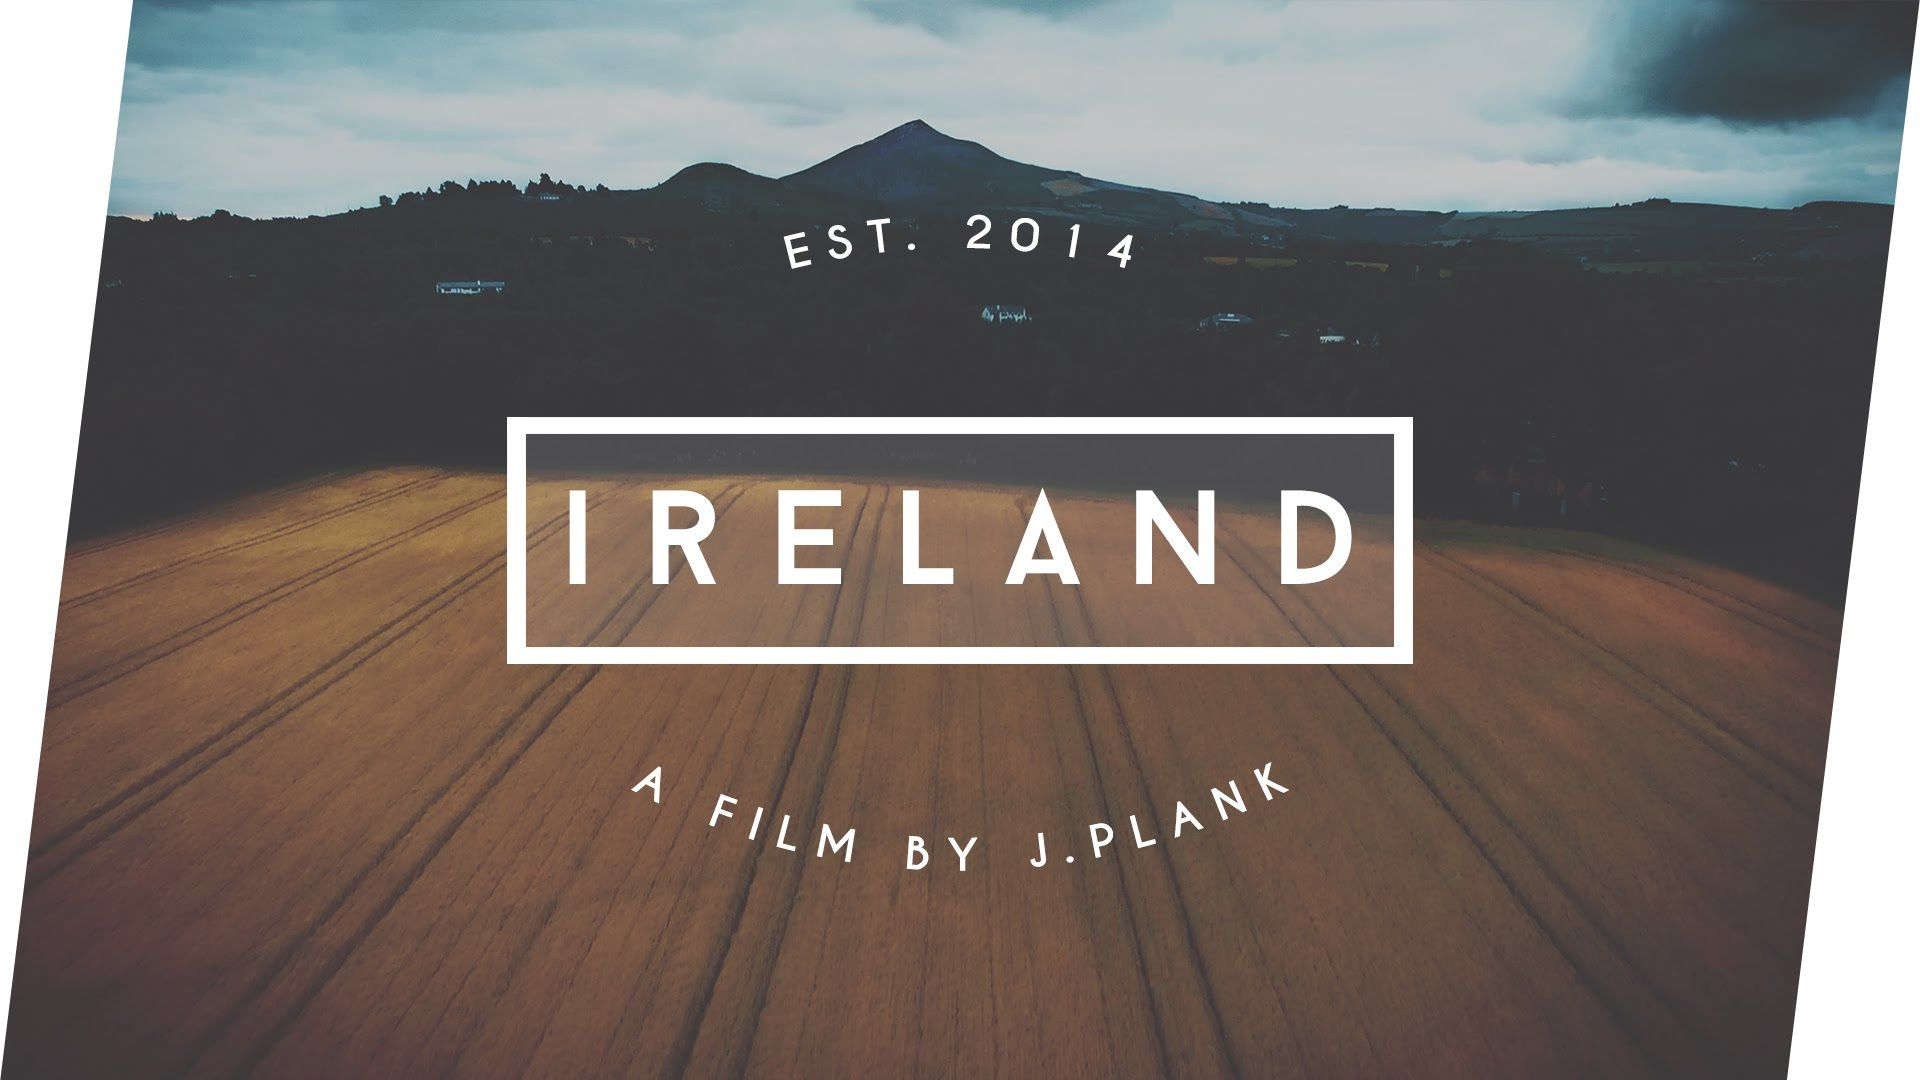 SHAPES OF IRELAND | DJI PHANTOM 3 PROFESSIONAL | 4K